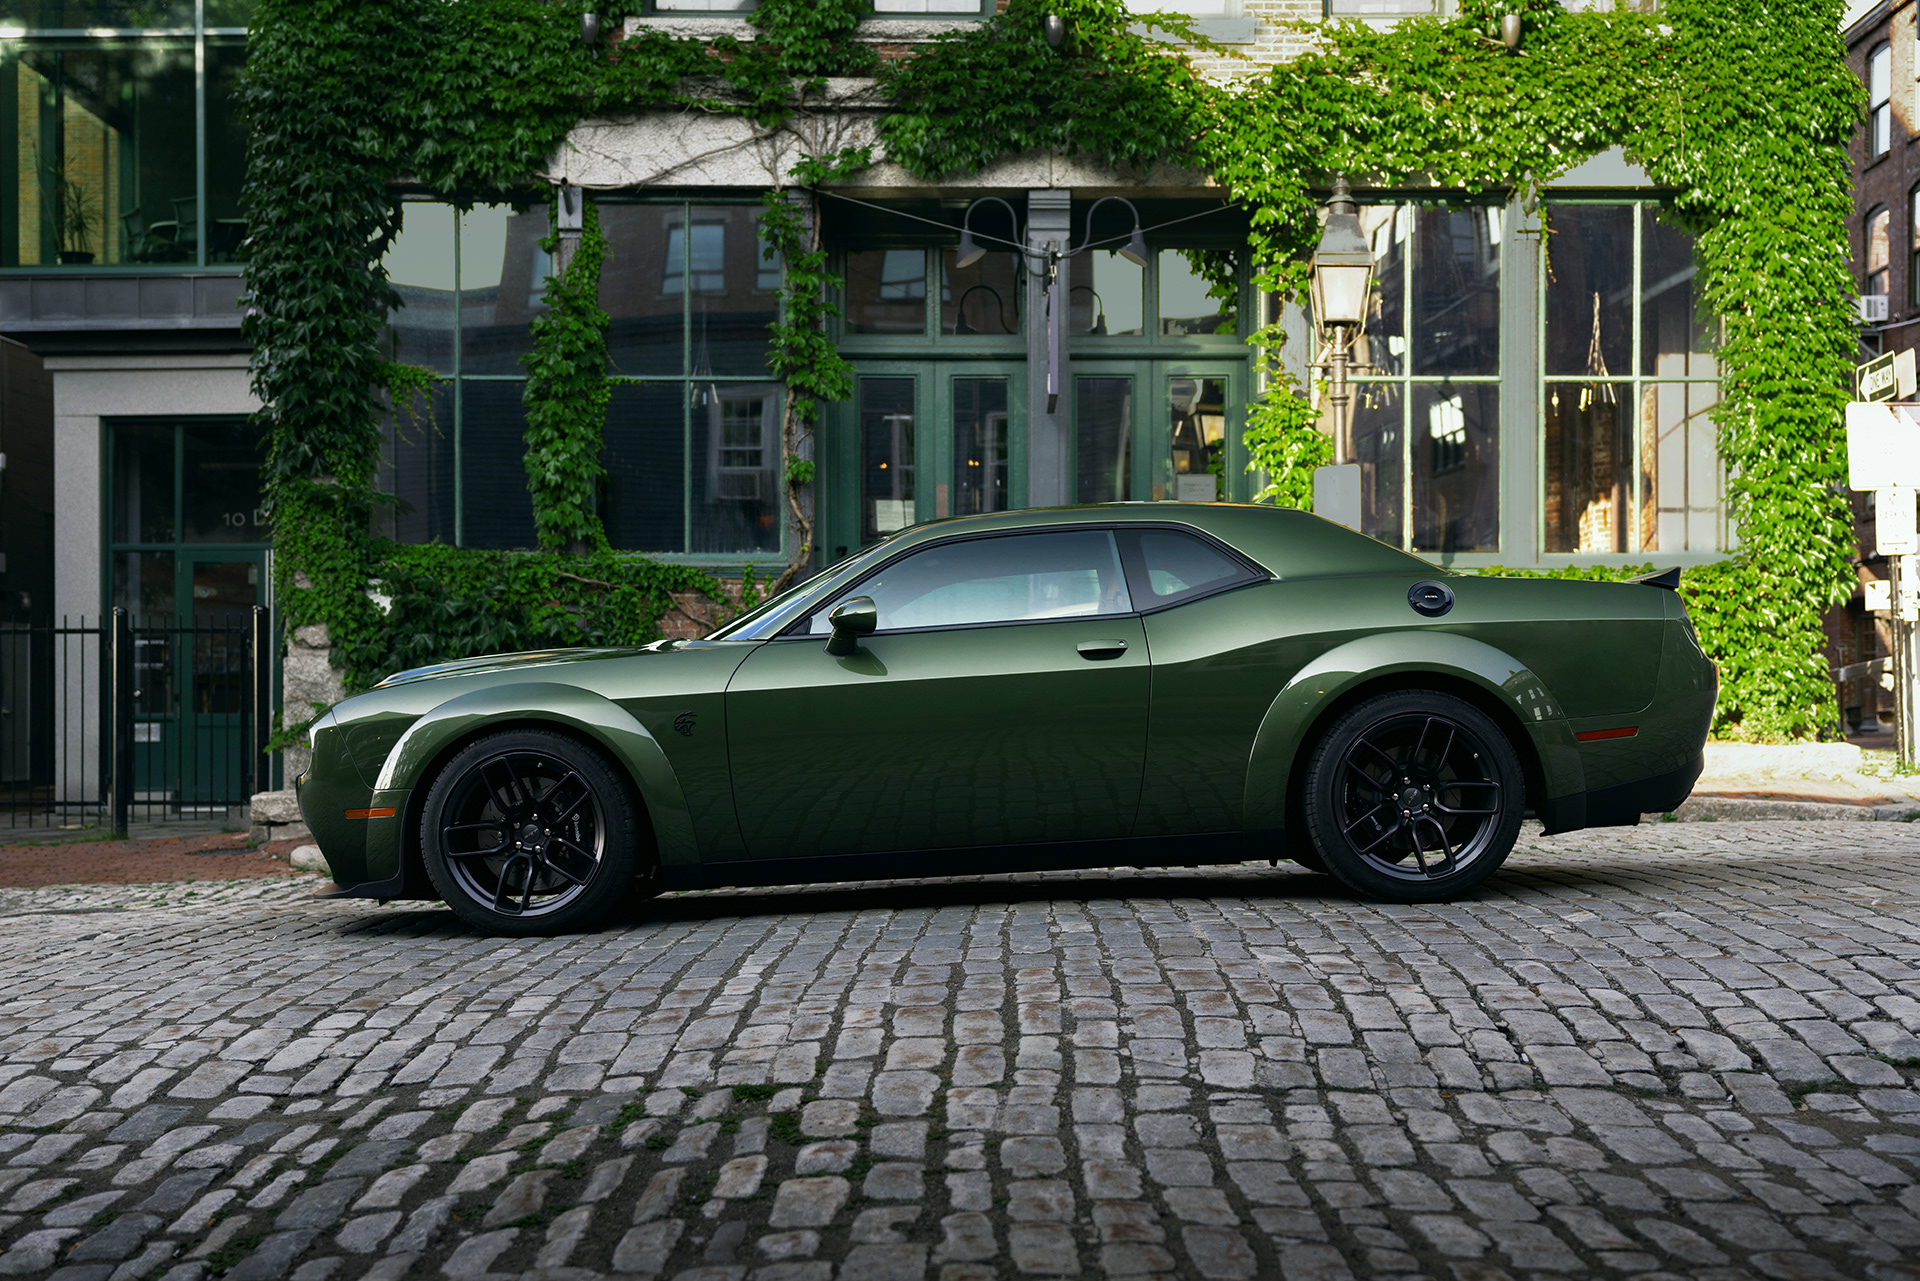 HD Wallpaper Dodge Challenger SRT Hellcat Green Car